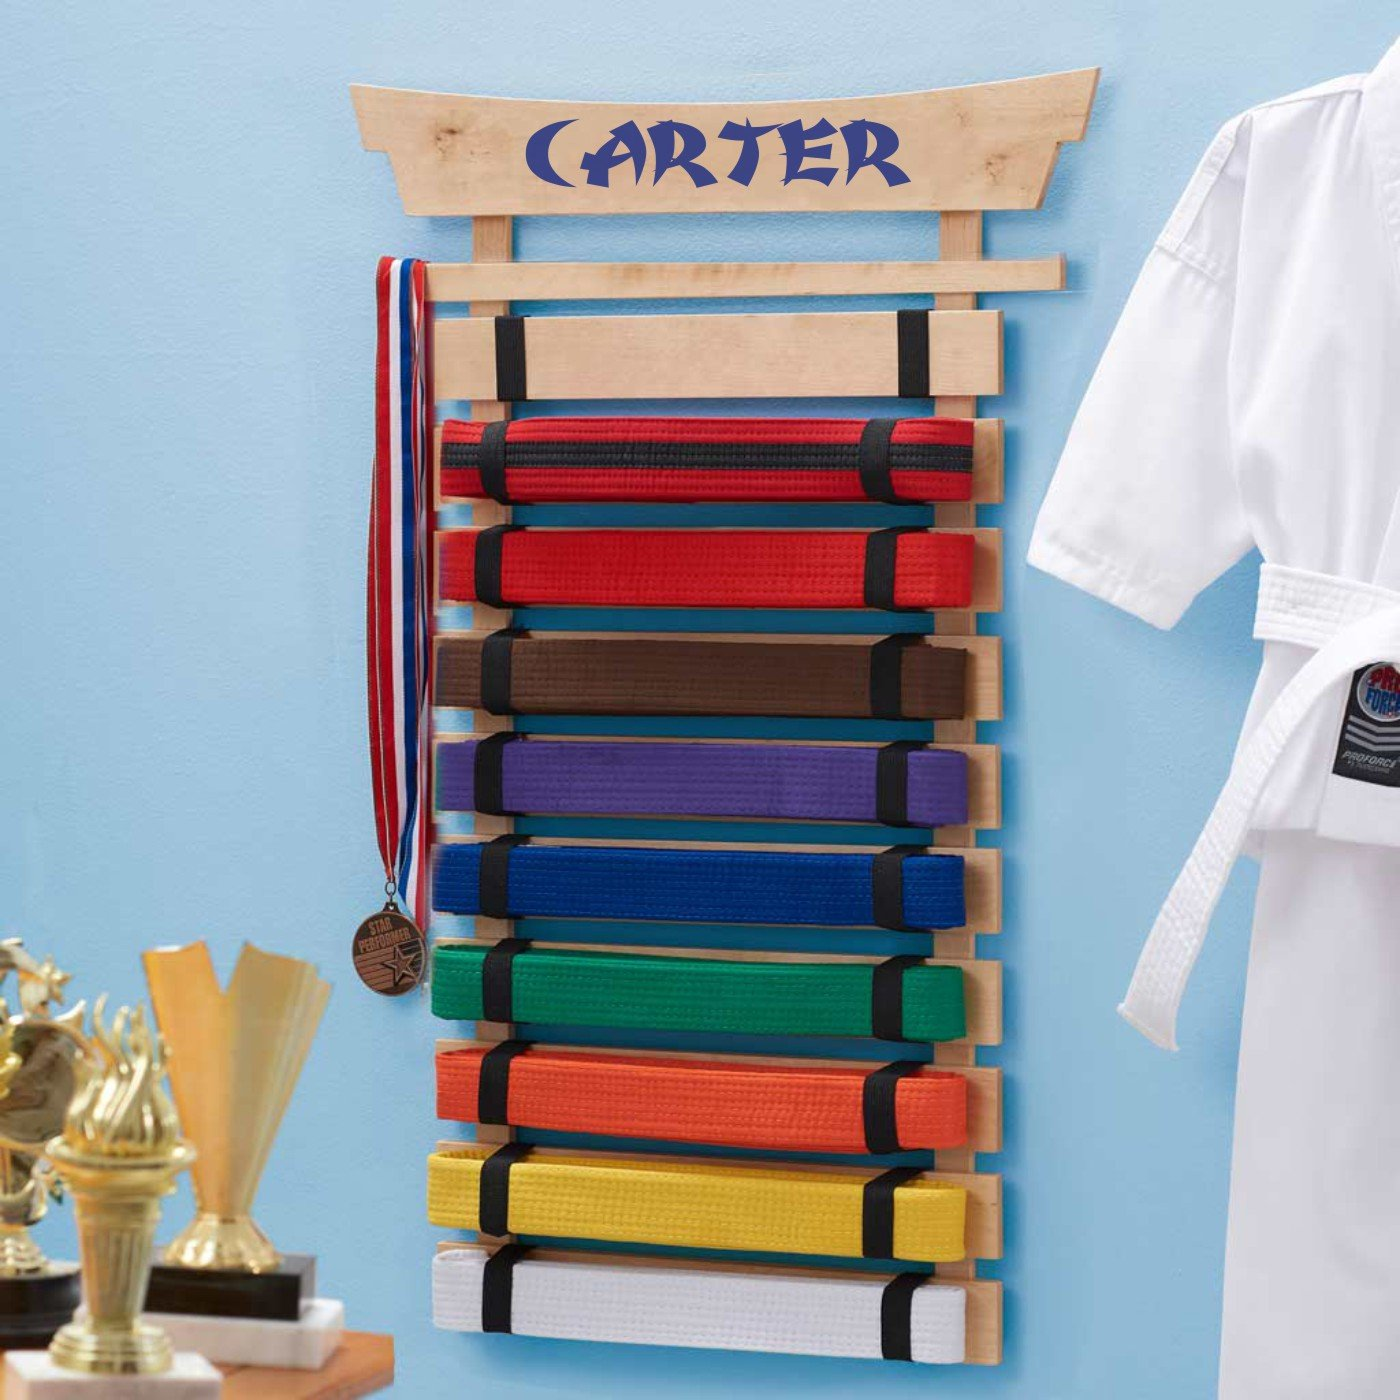 DIBSIES Personalization Station Personalized Karate Belt Display (10 Belts) by DIBSIES Personalization Station